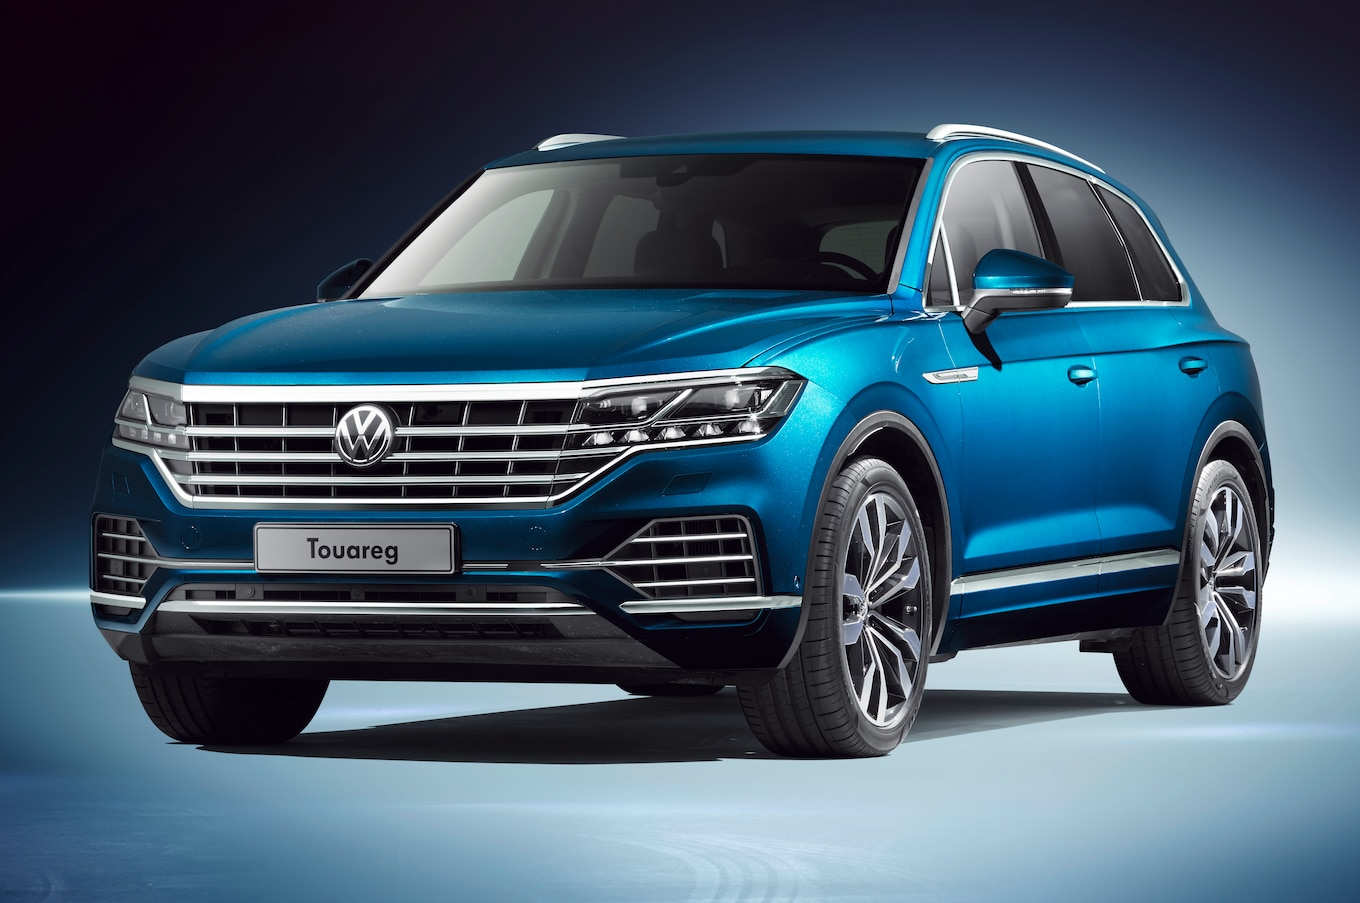 15 New 2020 Vw Touareg Tdi Interior